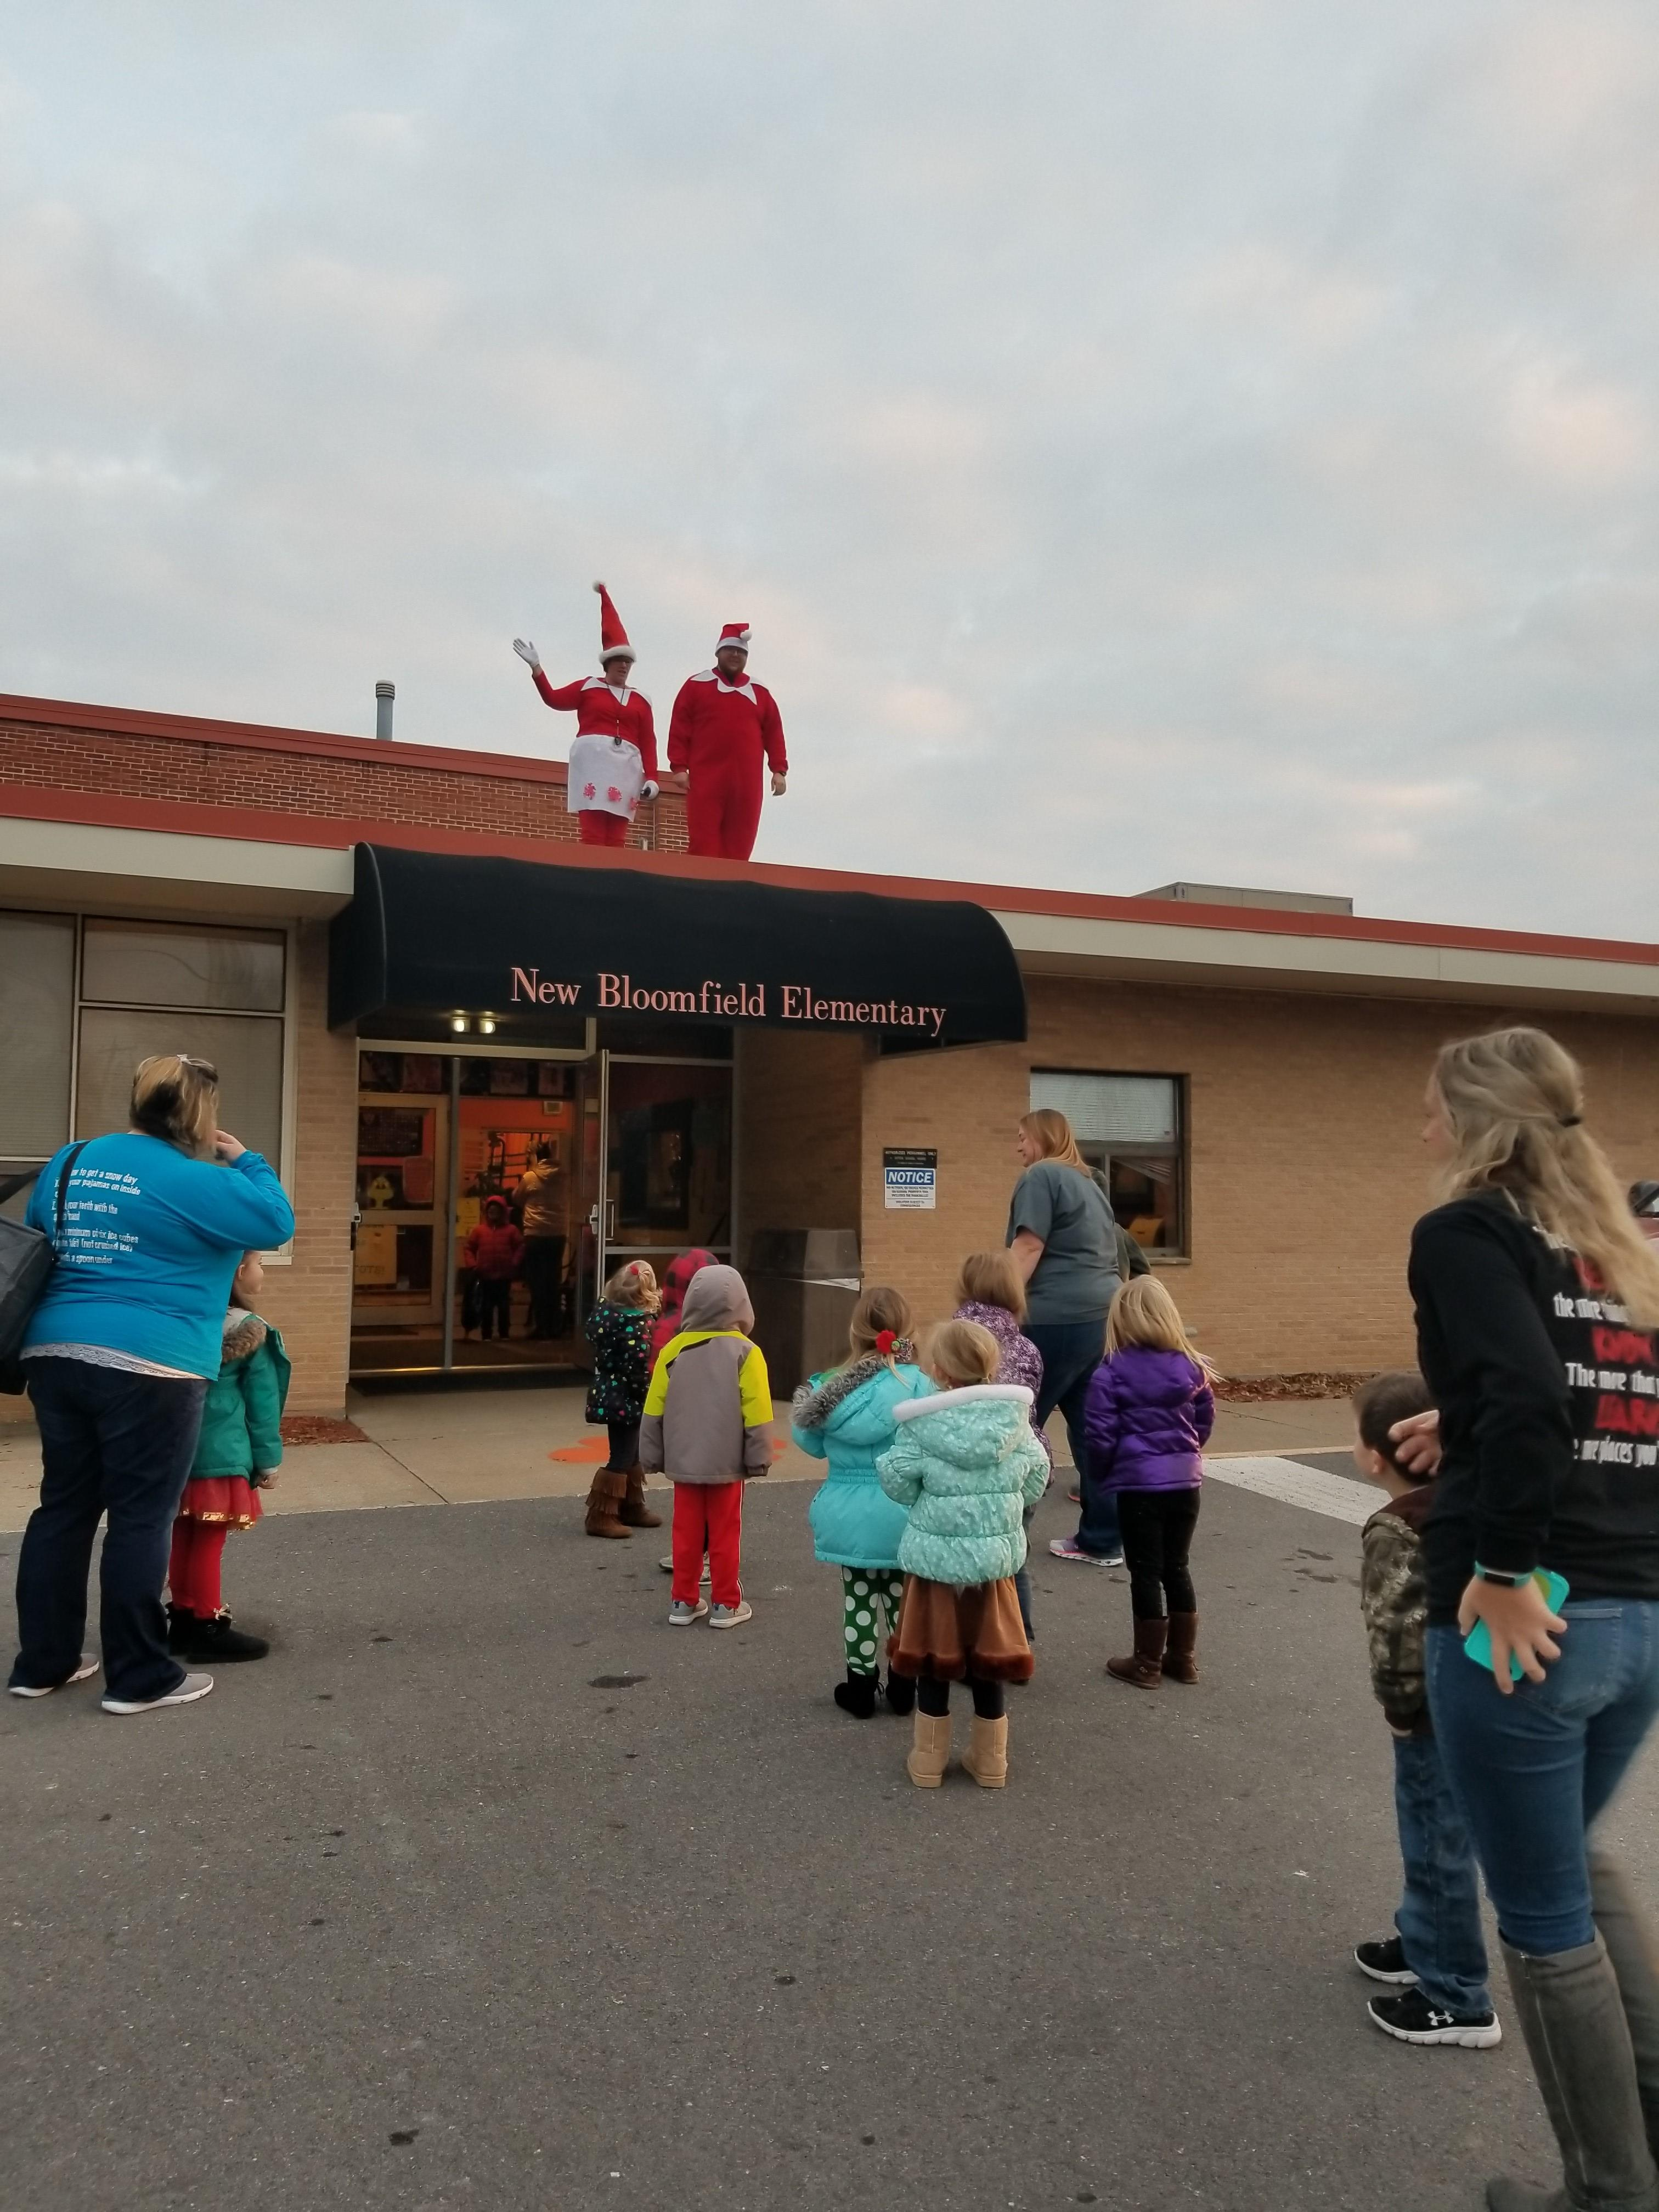 Students were greeted with holiday cheer by the staff of New Bloomfield Elementary Friday. (Photo courtesy of Julie Gerloff)<p></p>